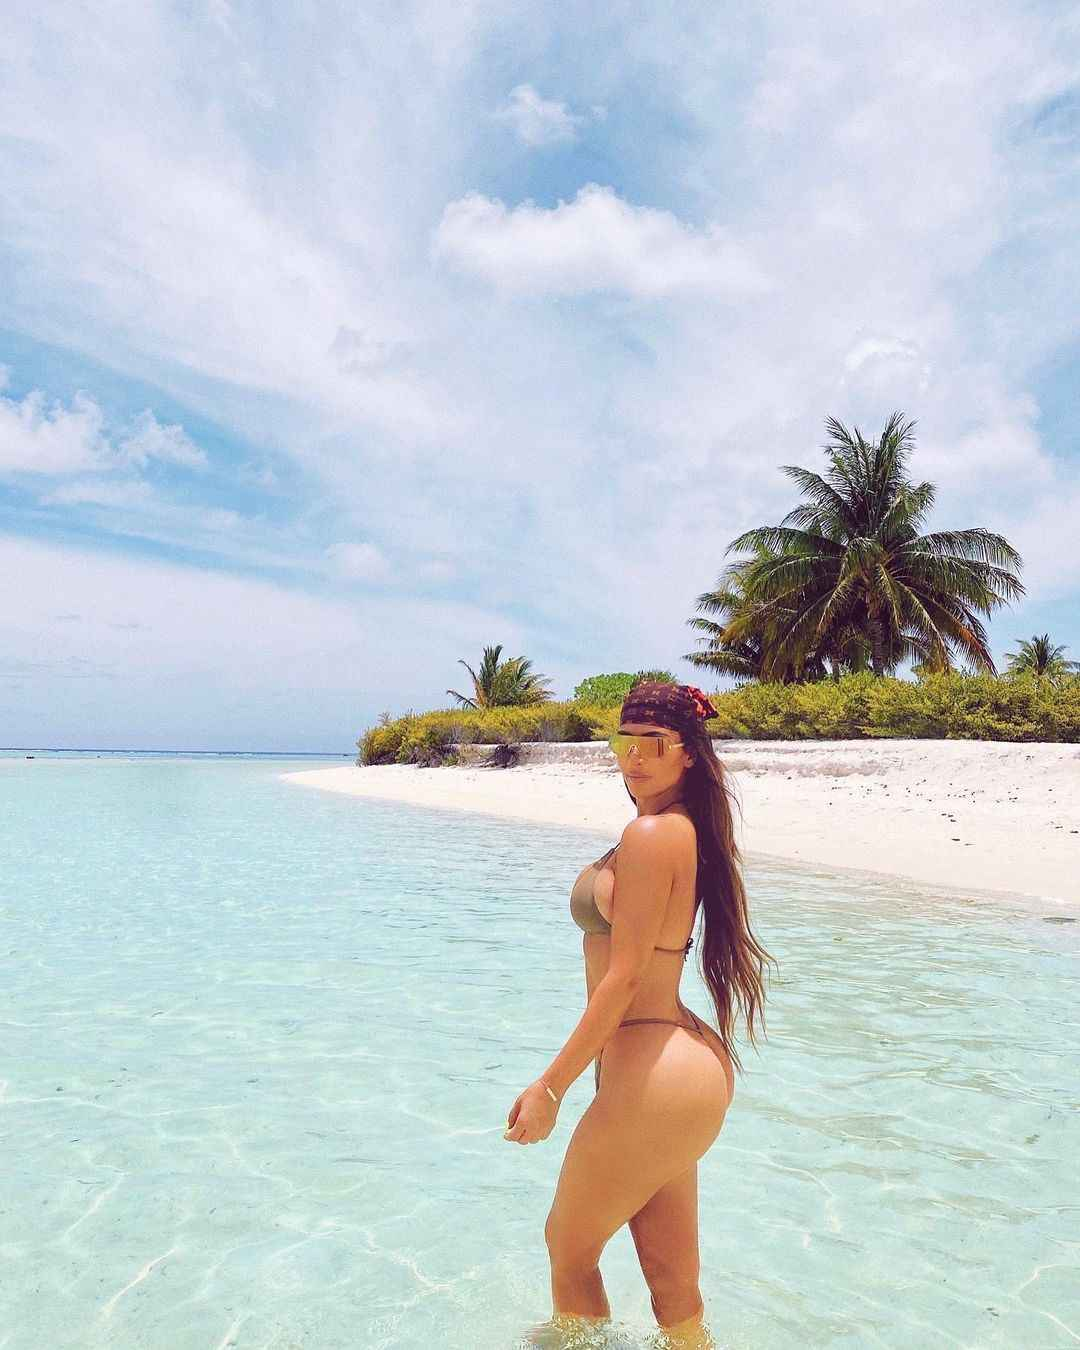 40 and Still Hot Reality Star Kim Kardashian Shares New Bikini Photos - Tatahfonewsarena